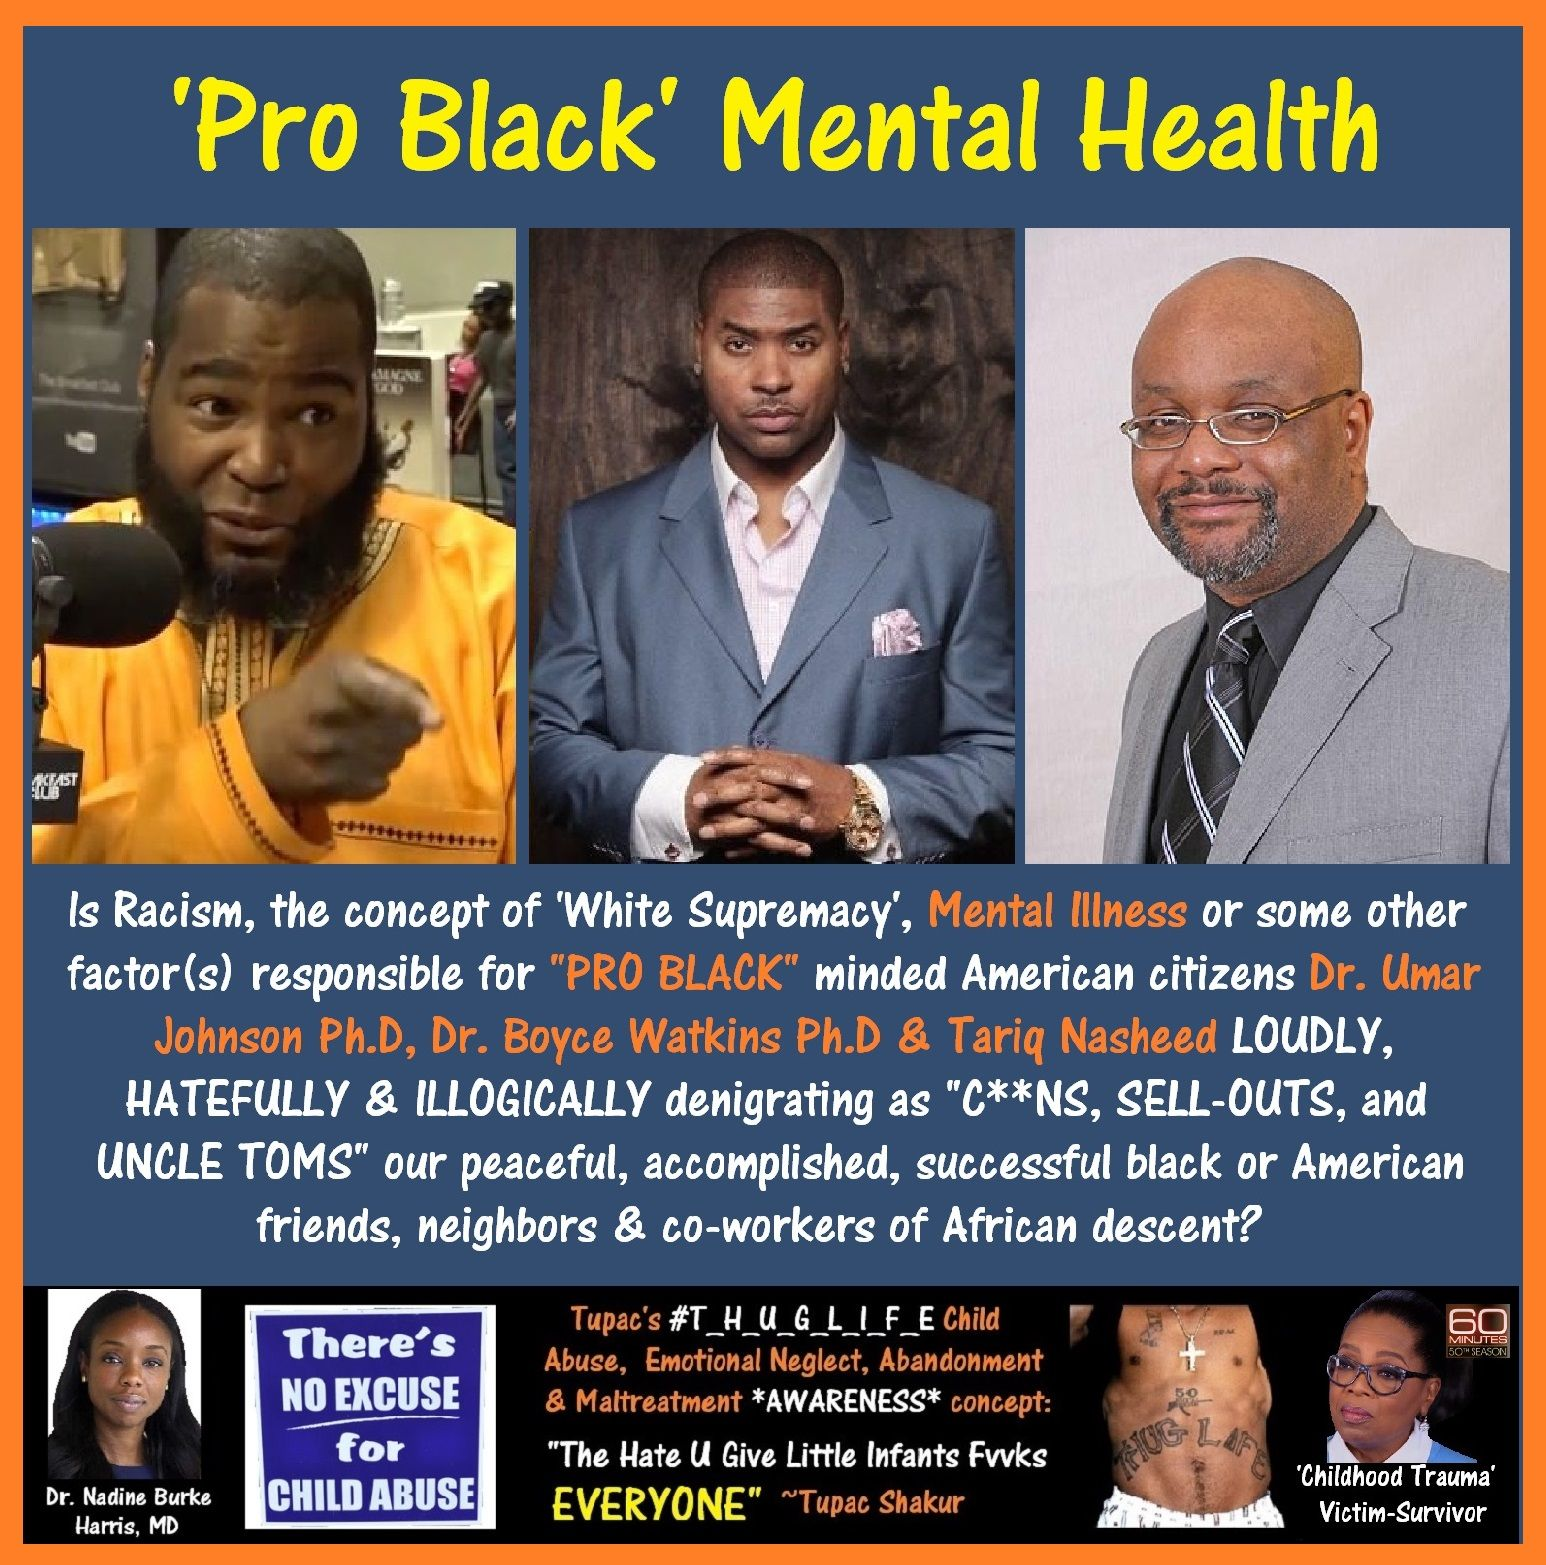 Dr. Umar Johnson Ph.D, Dr. Boyce Watkins Ph.D, Tariq Nasheed.jpg